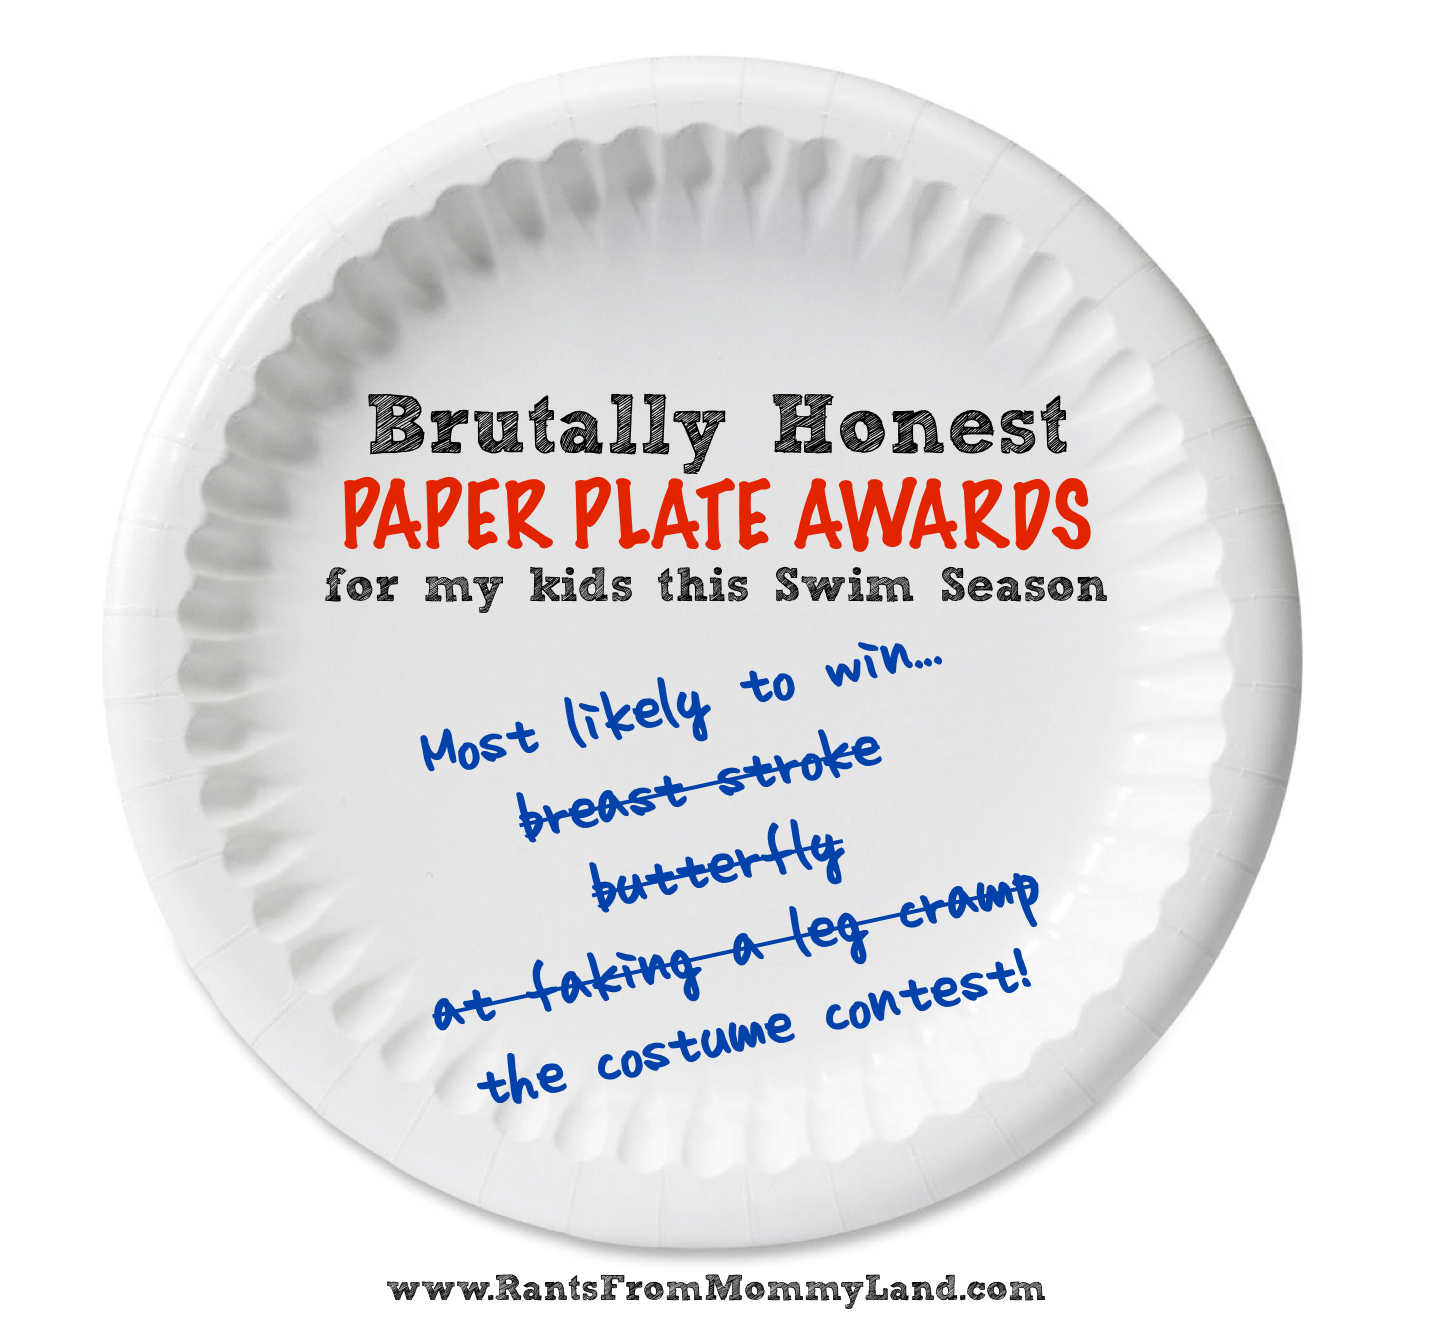 RANTS FROM MOMMYLAND: Brutally Honest Paper Plate Awards for this